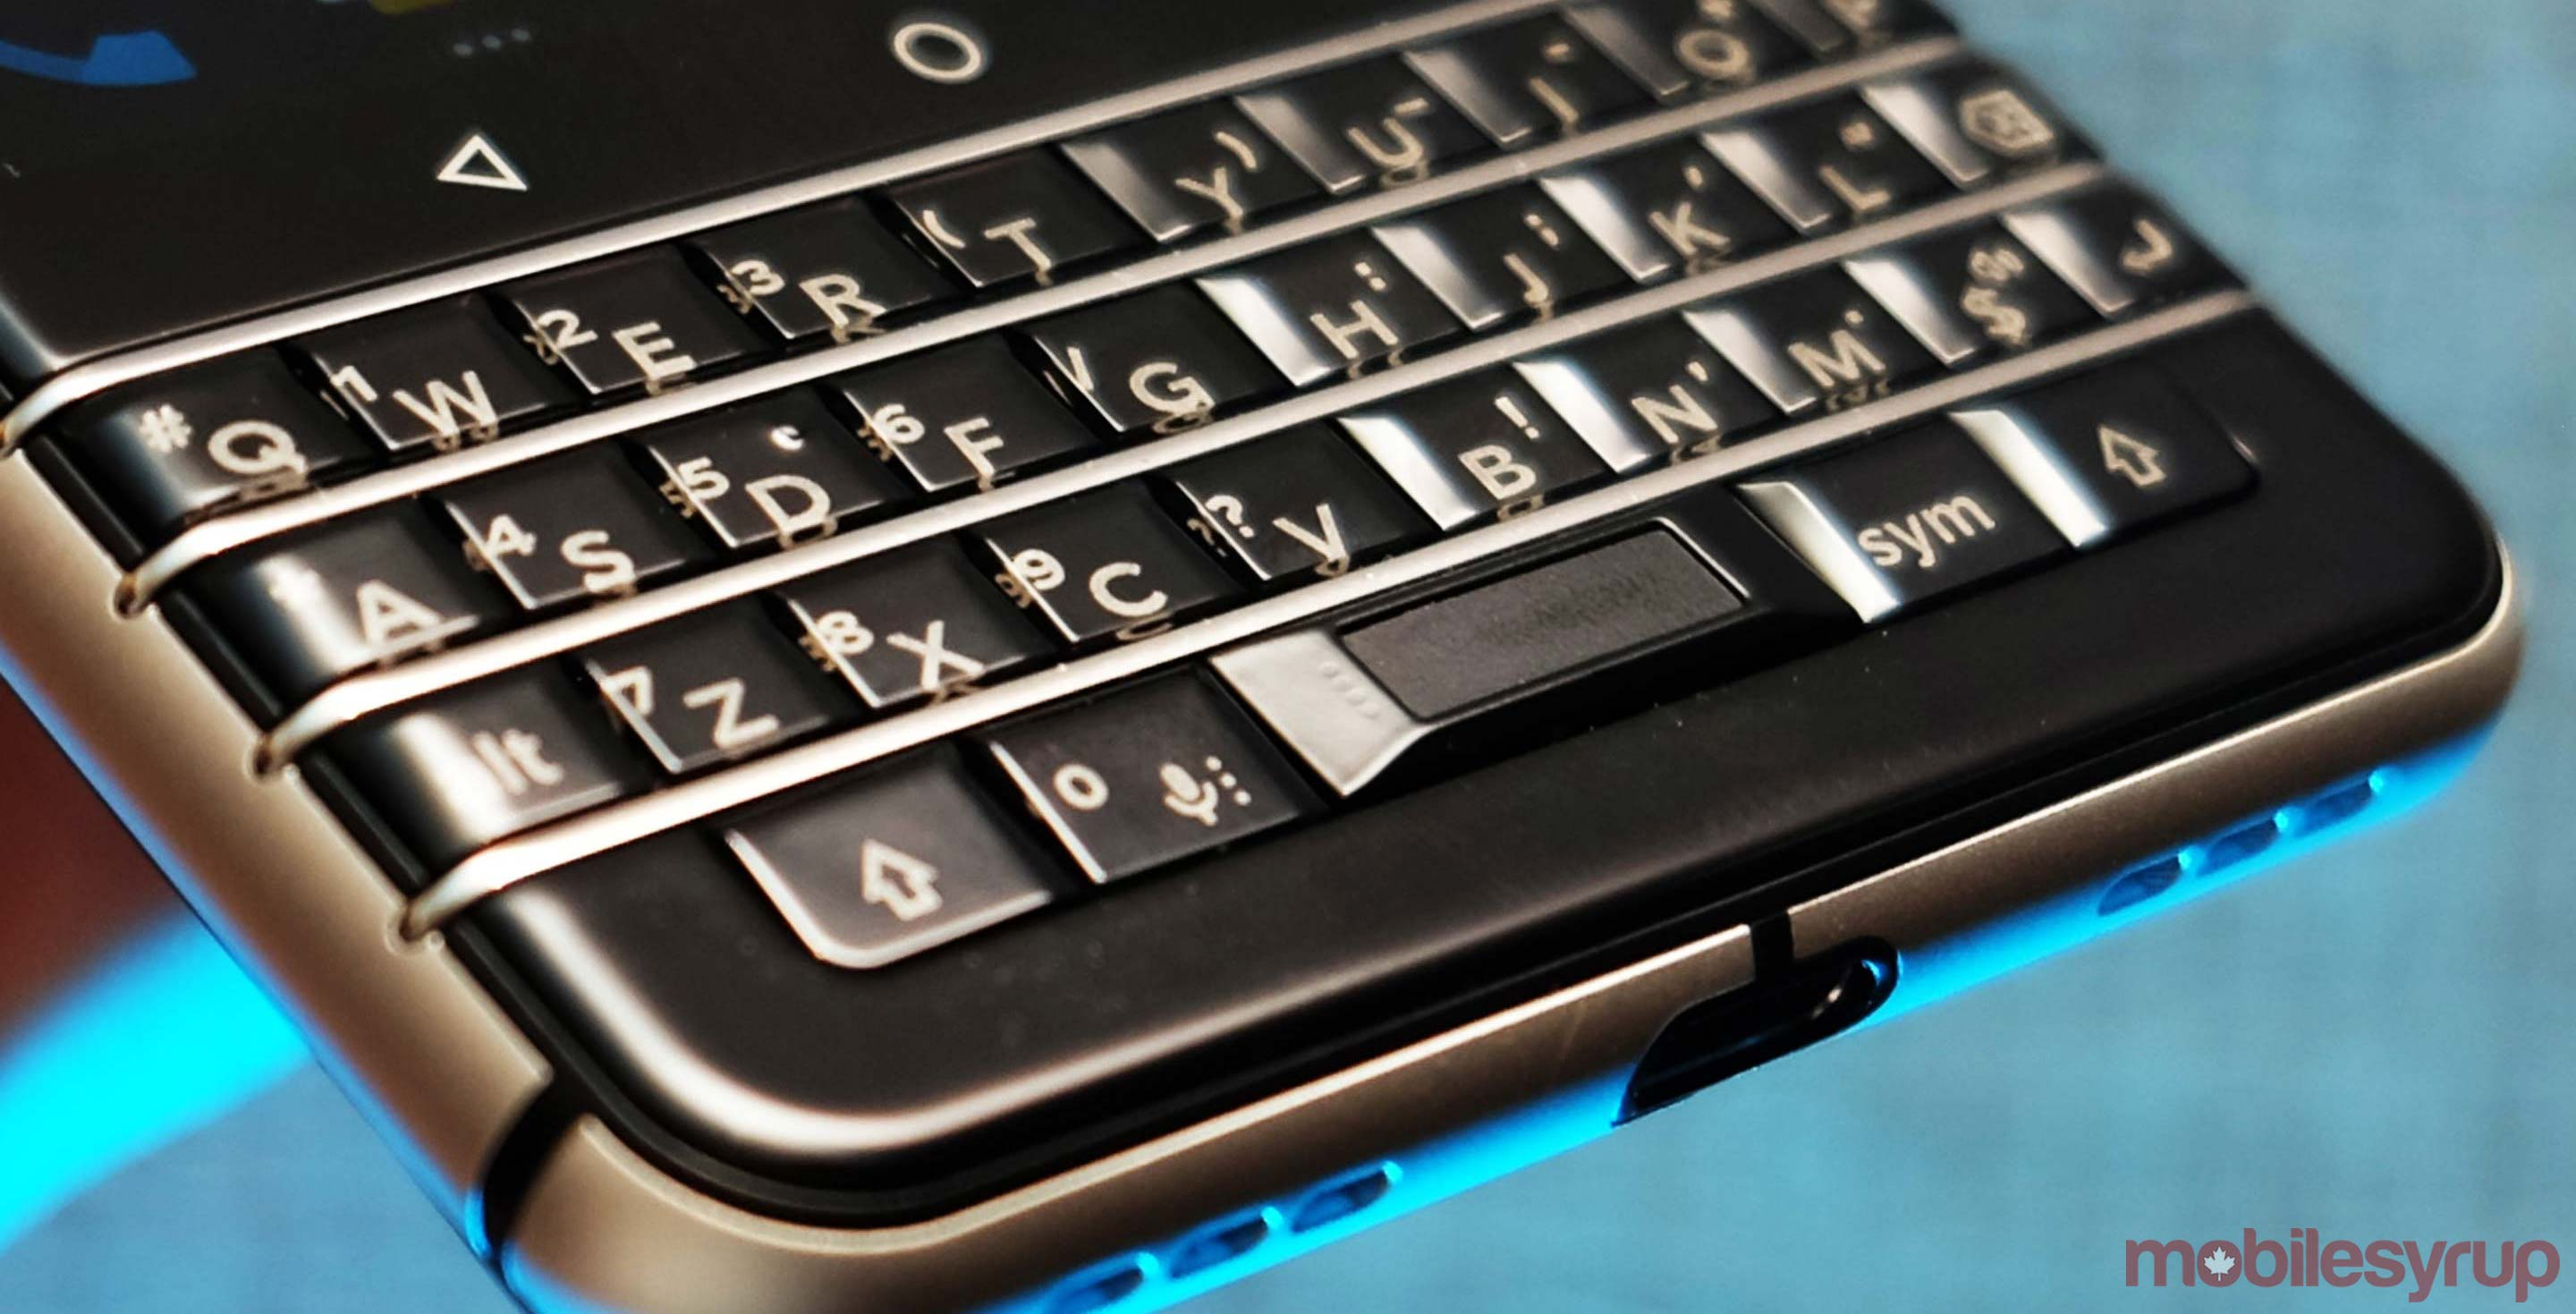 BlackBerry Mercury set to officially debut on February 25th at MWC